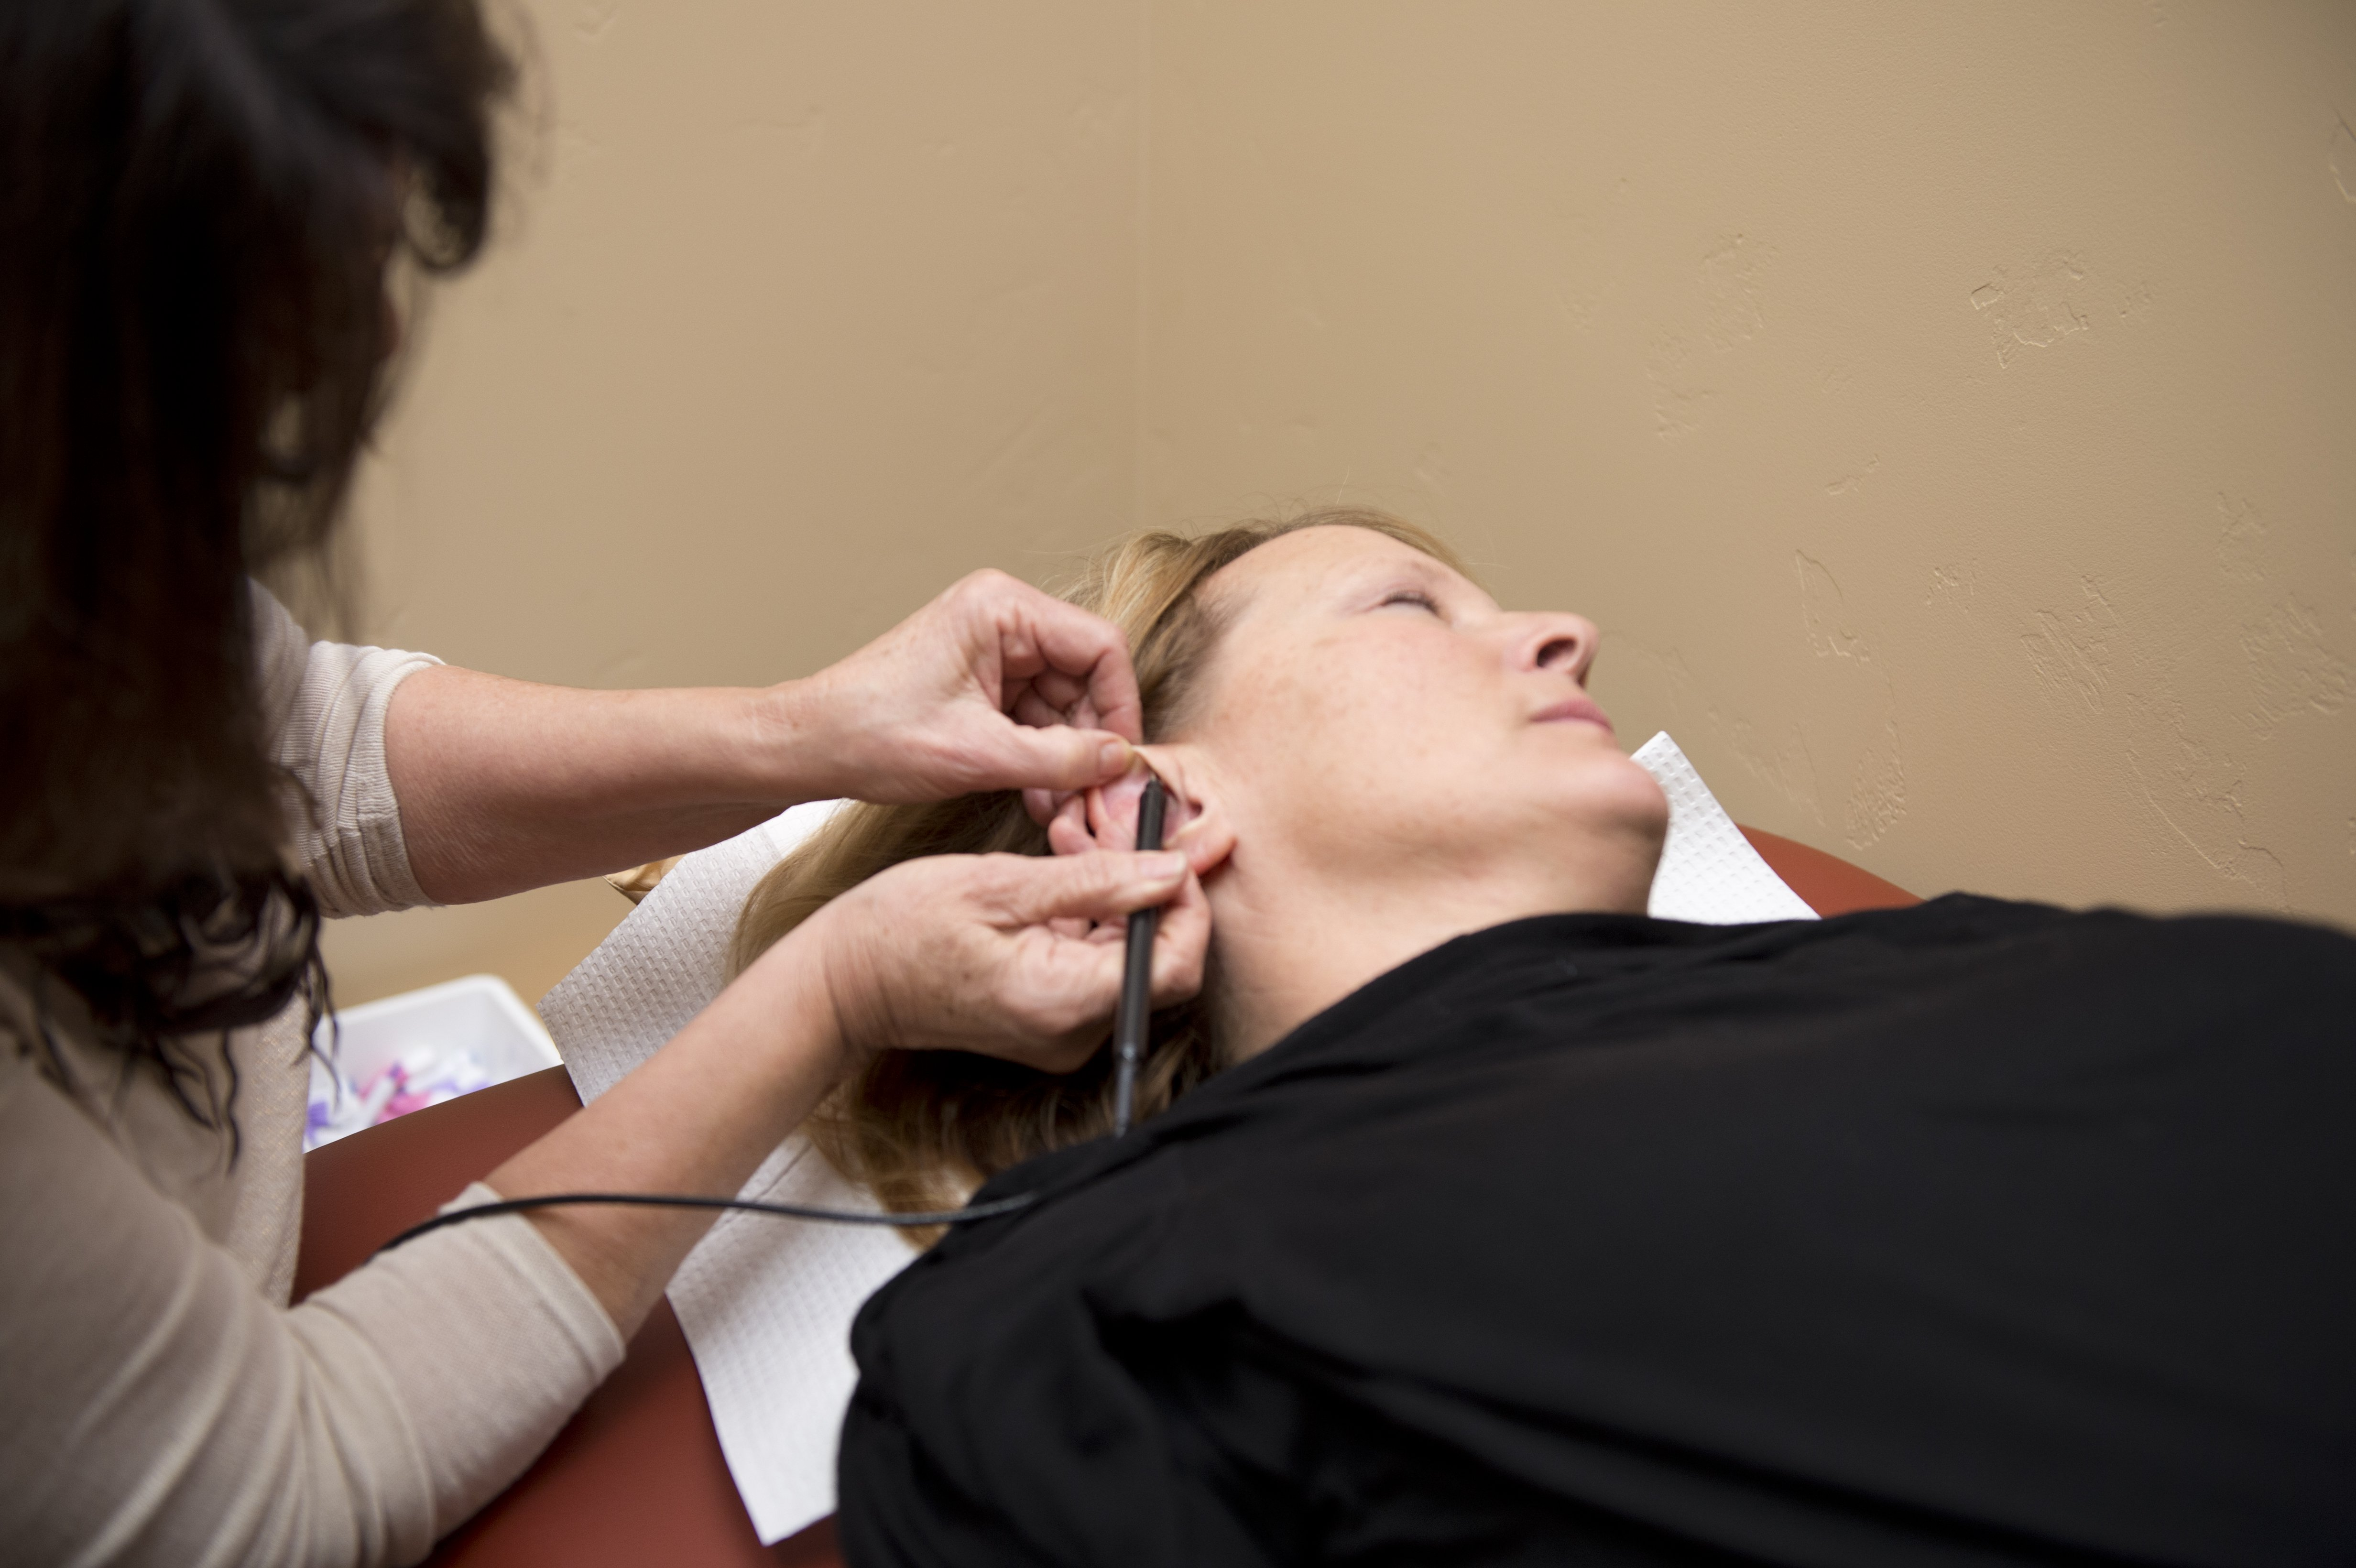 A patient undergoes auriculotherapy at the Karlfeldt Center of Idaho.